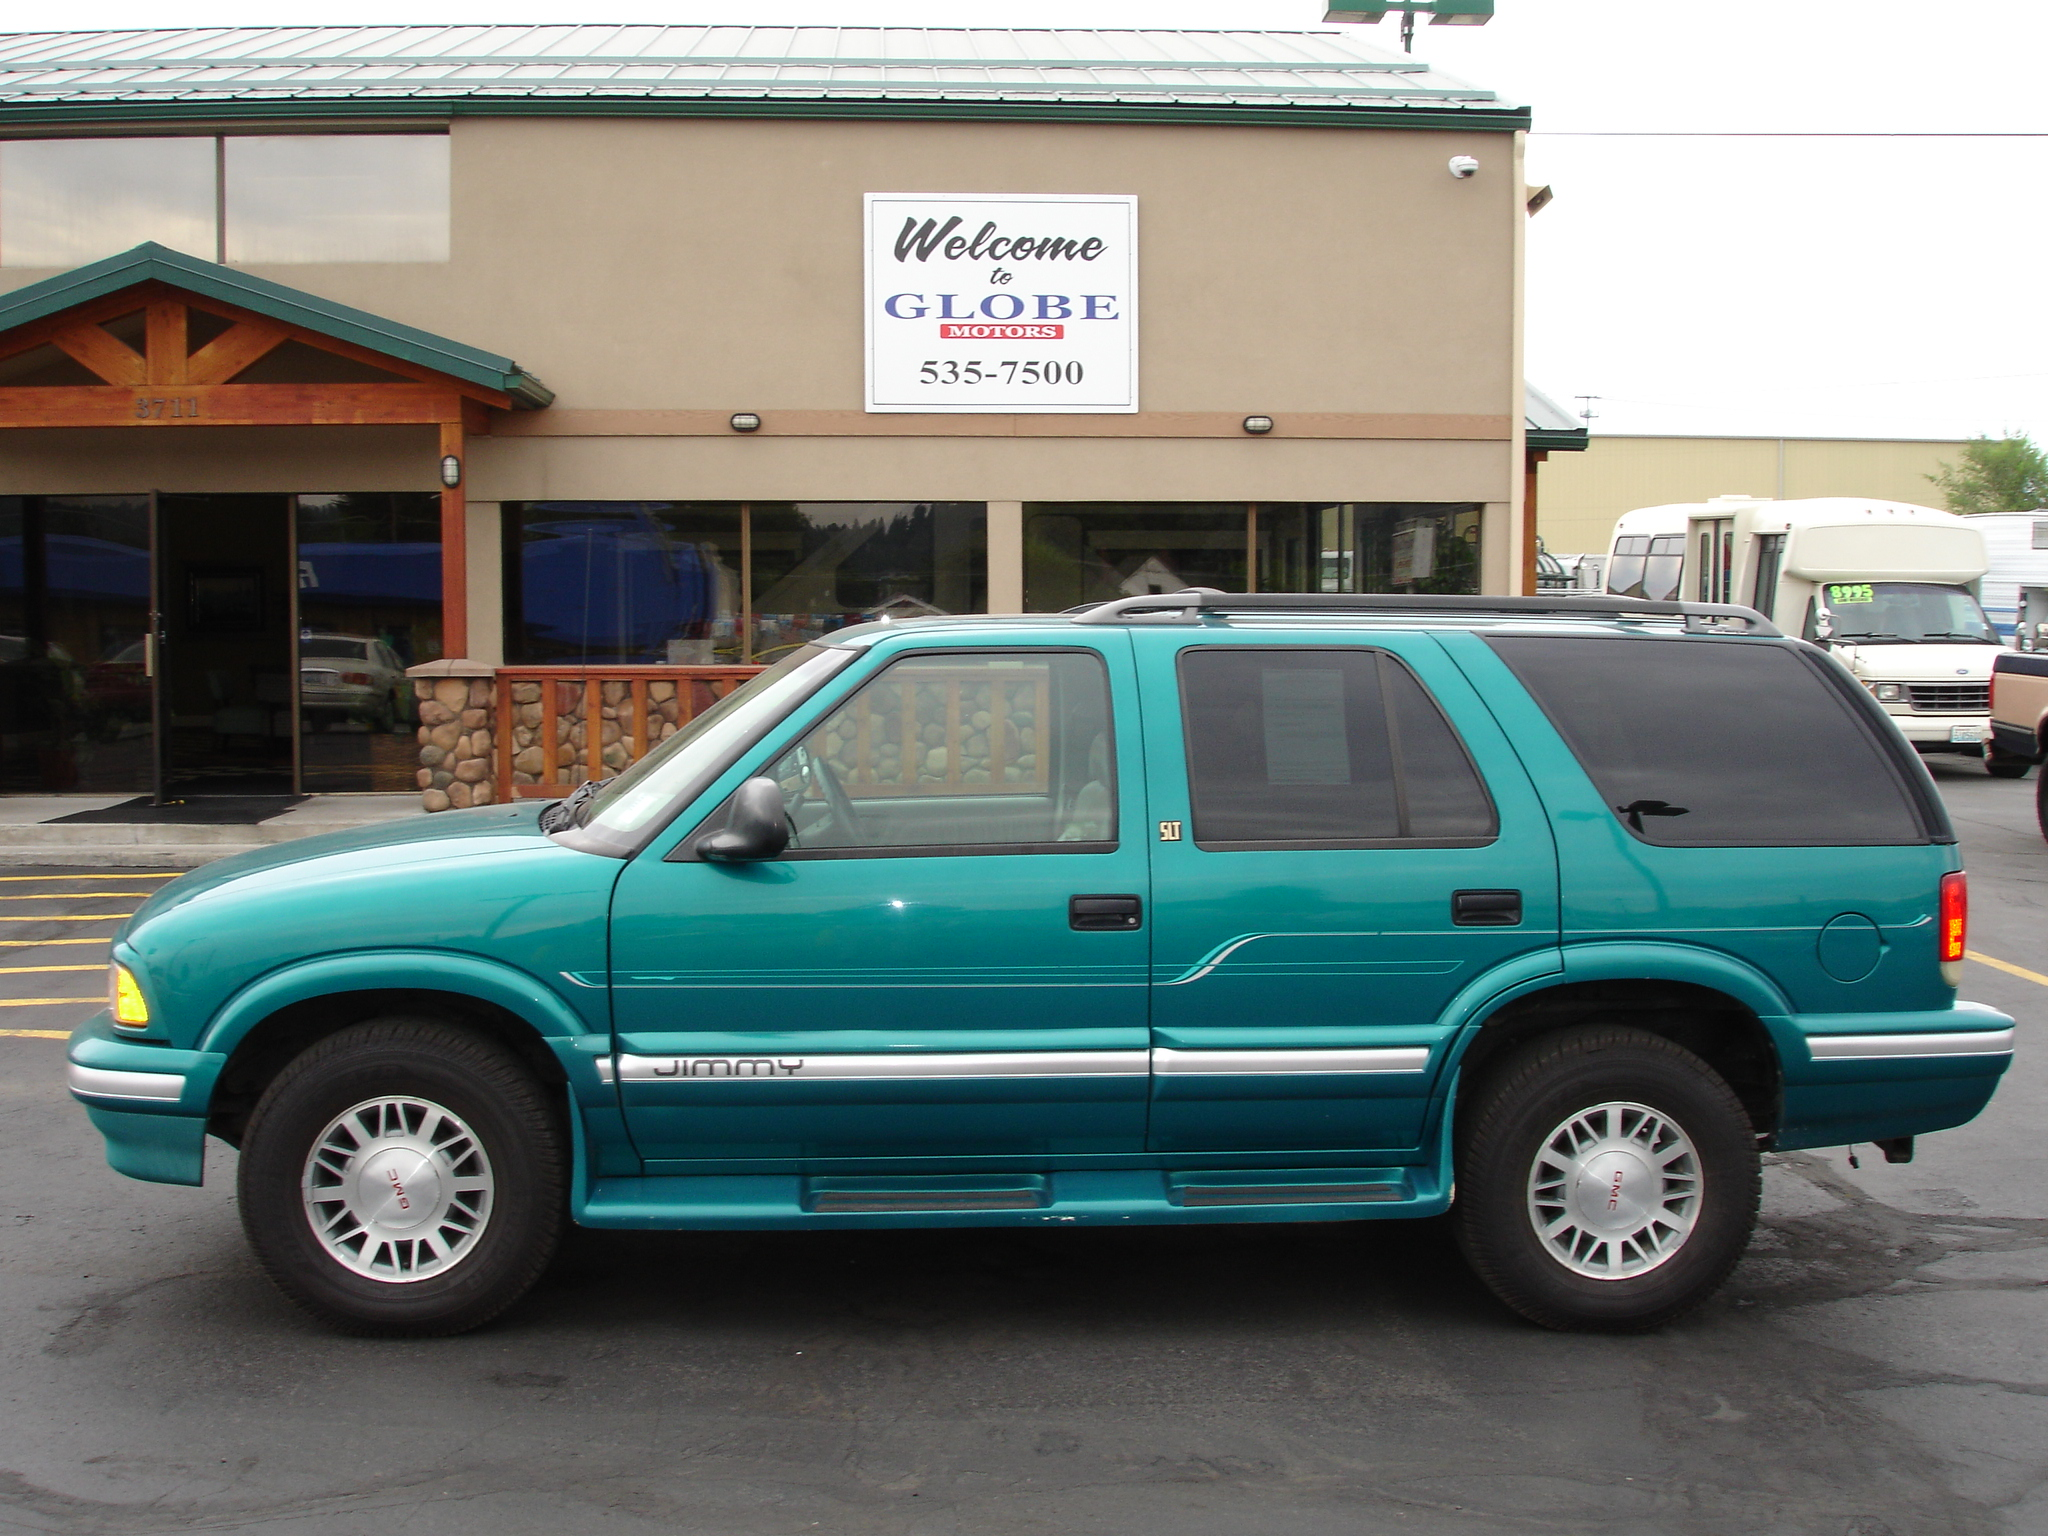 1995 GMC Jimmy #8 GMC Jimmy #8